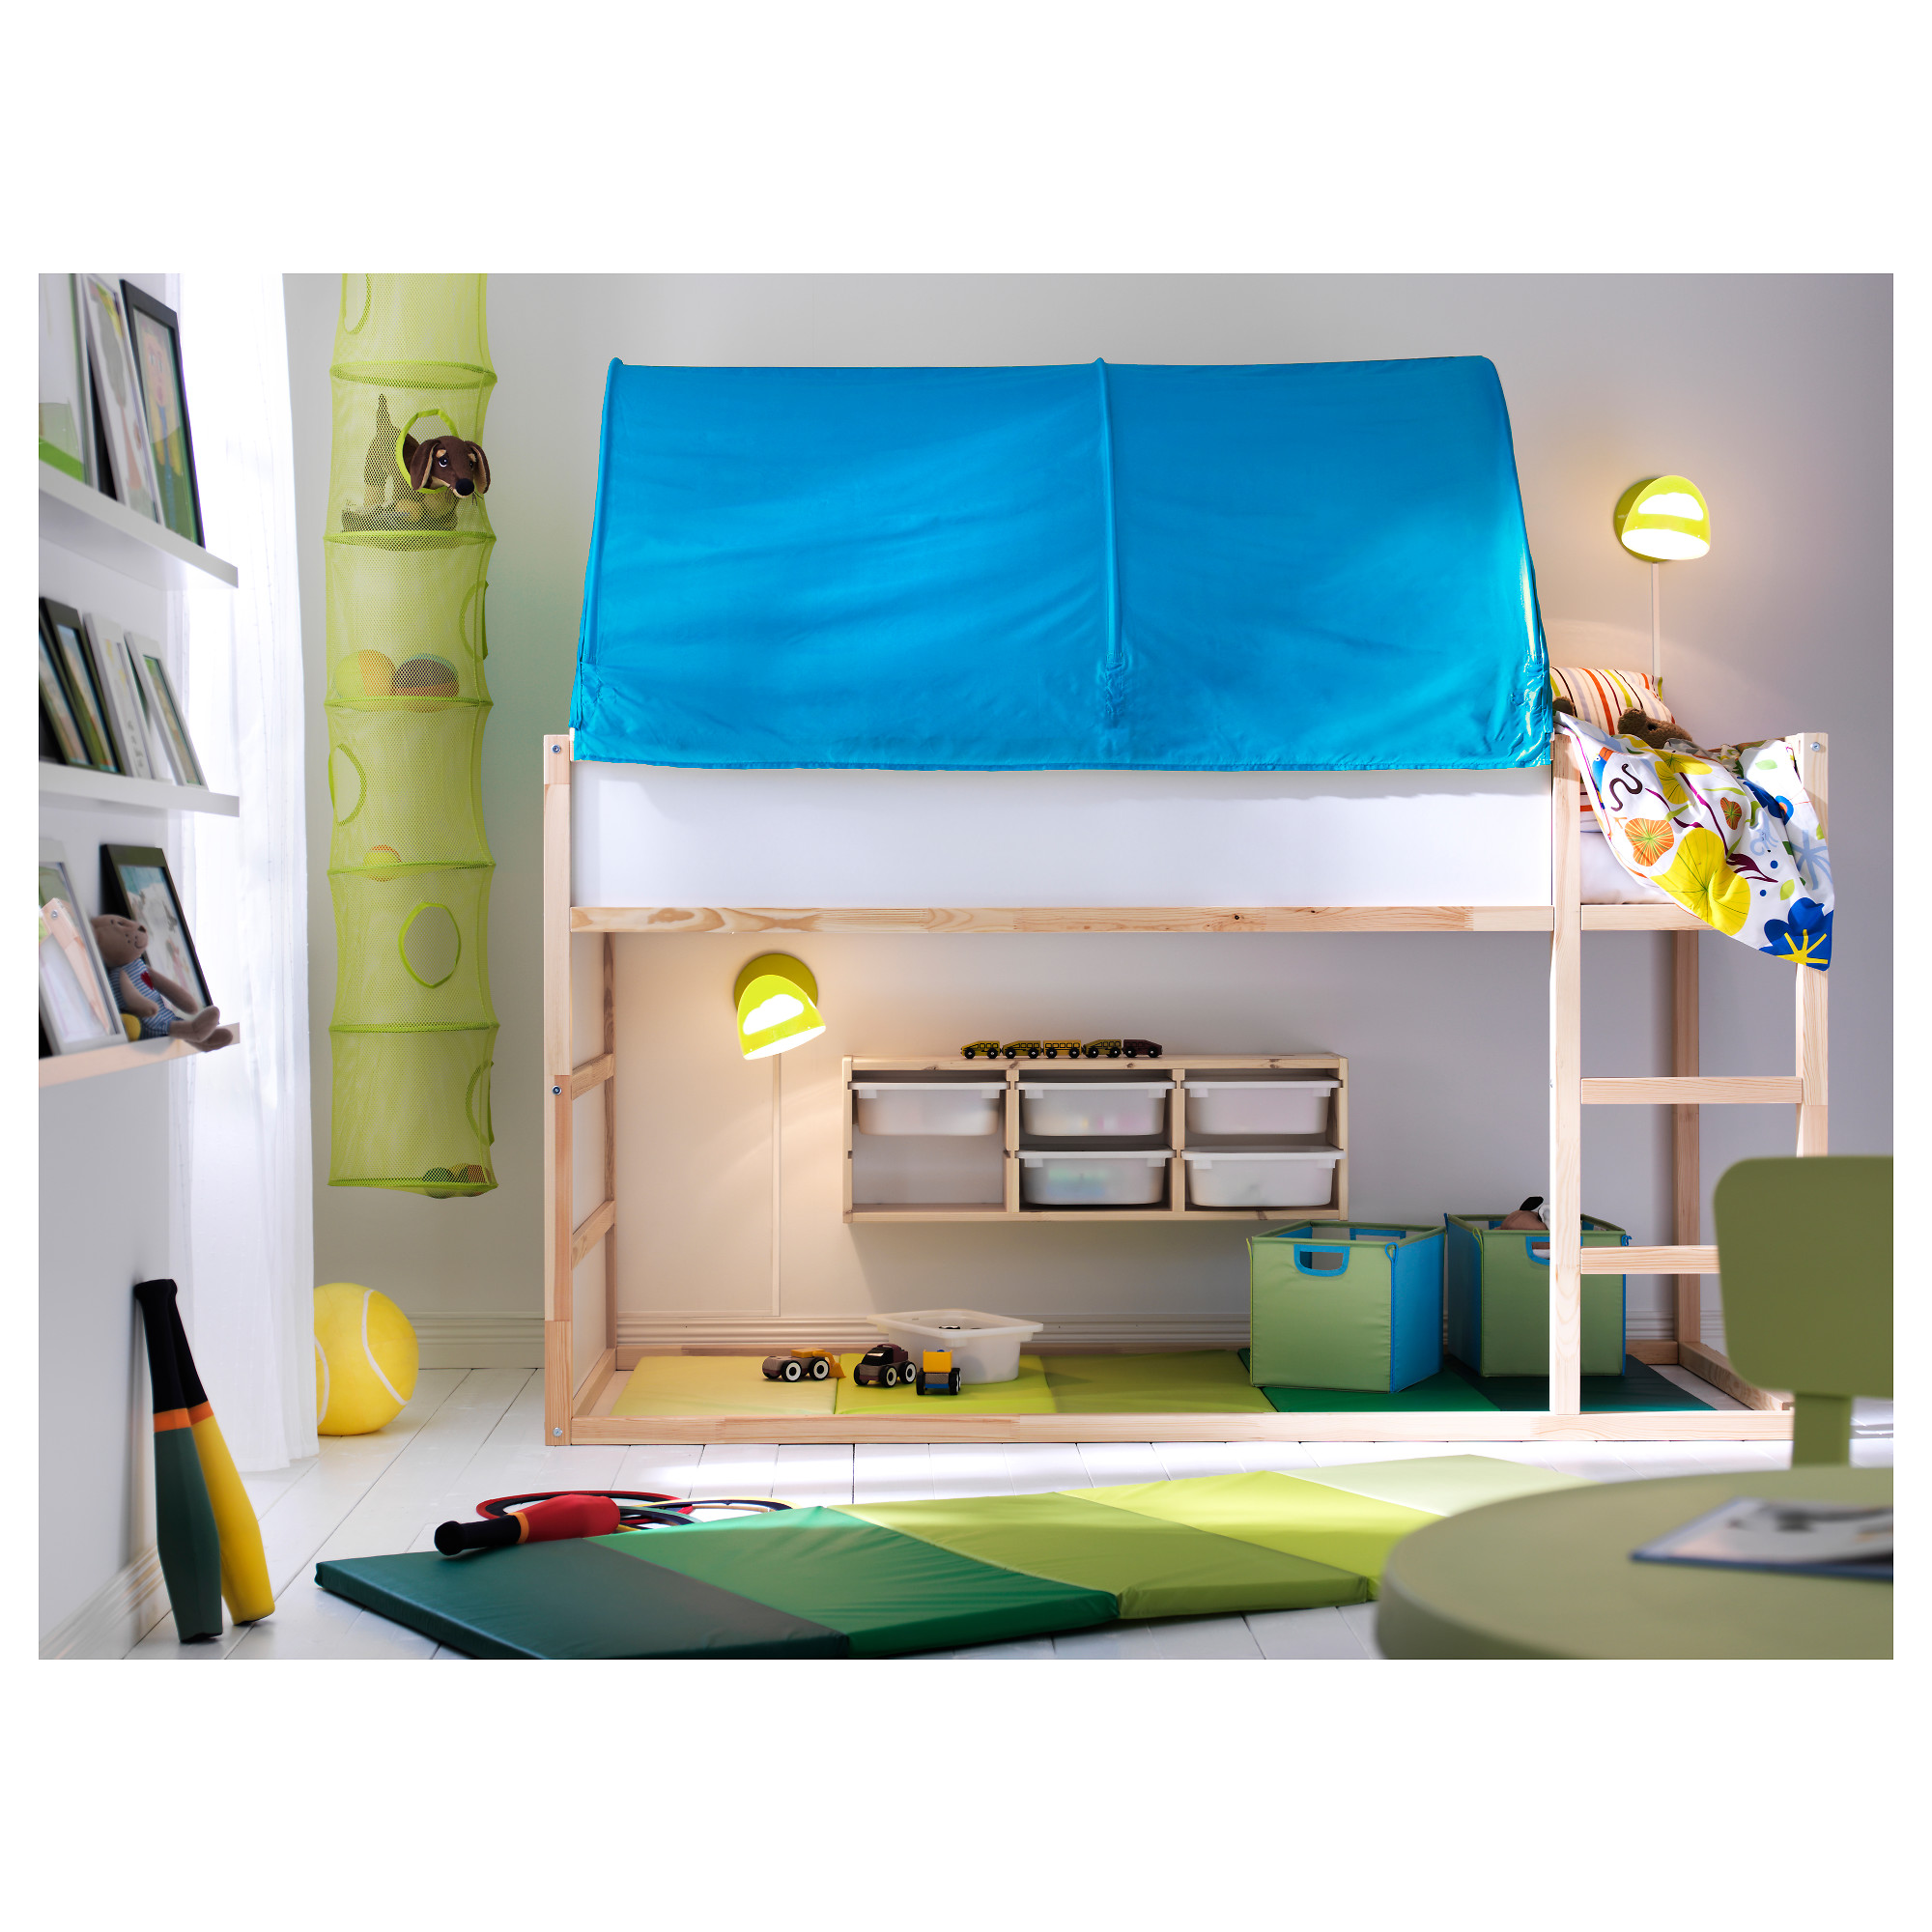 sc 1 st  Ikea : bunk beds with tent - memphite.com